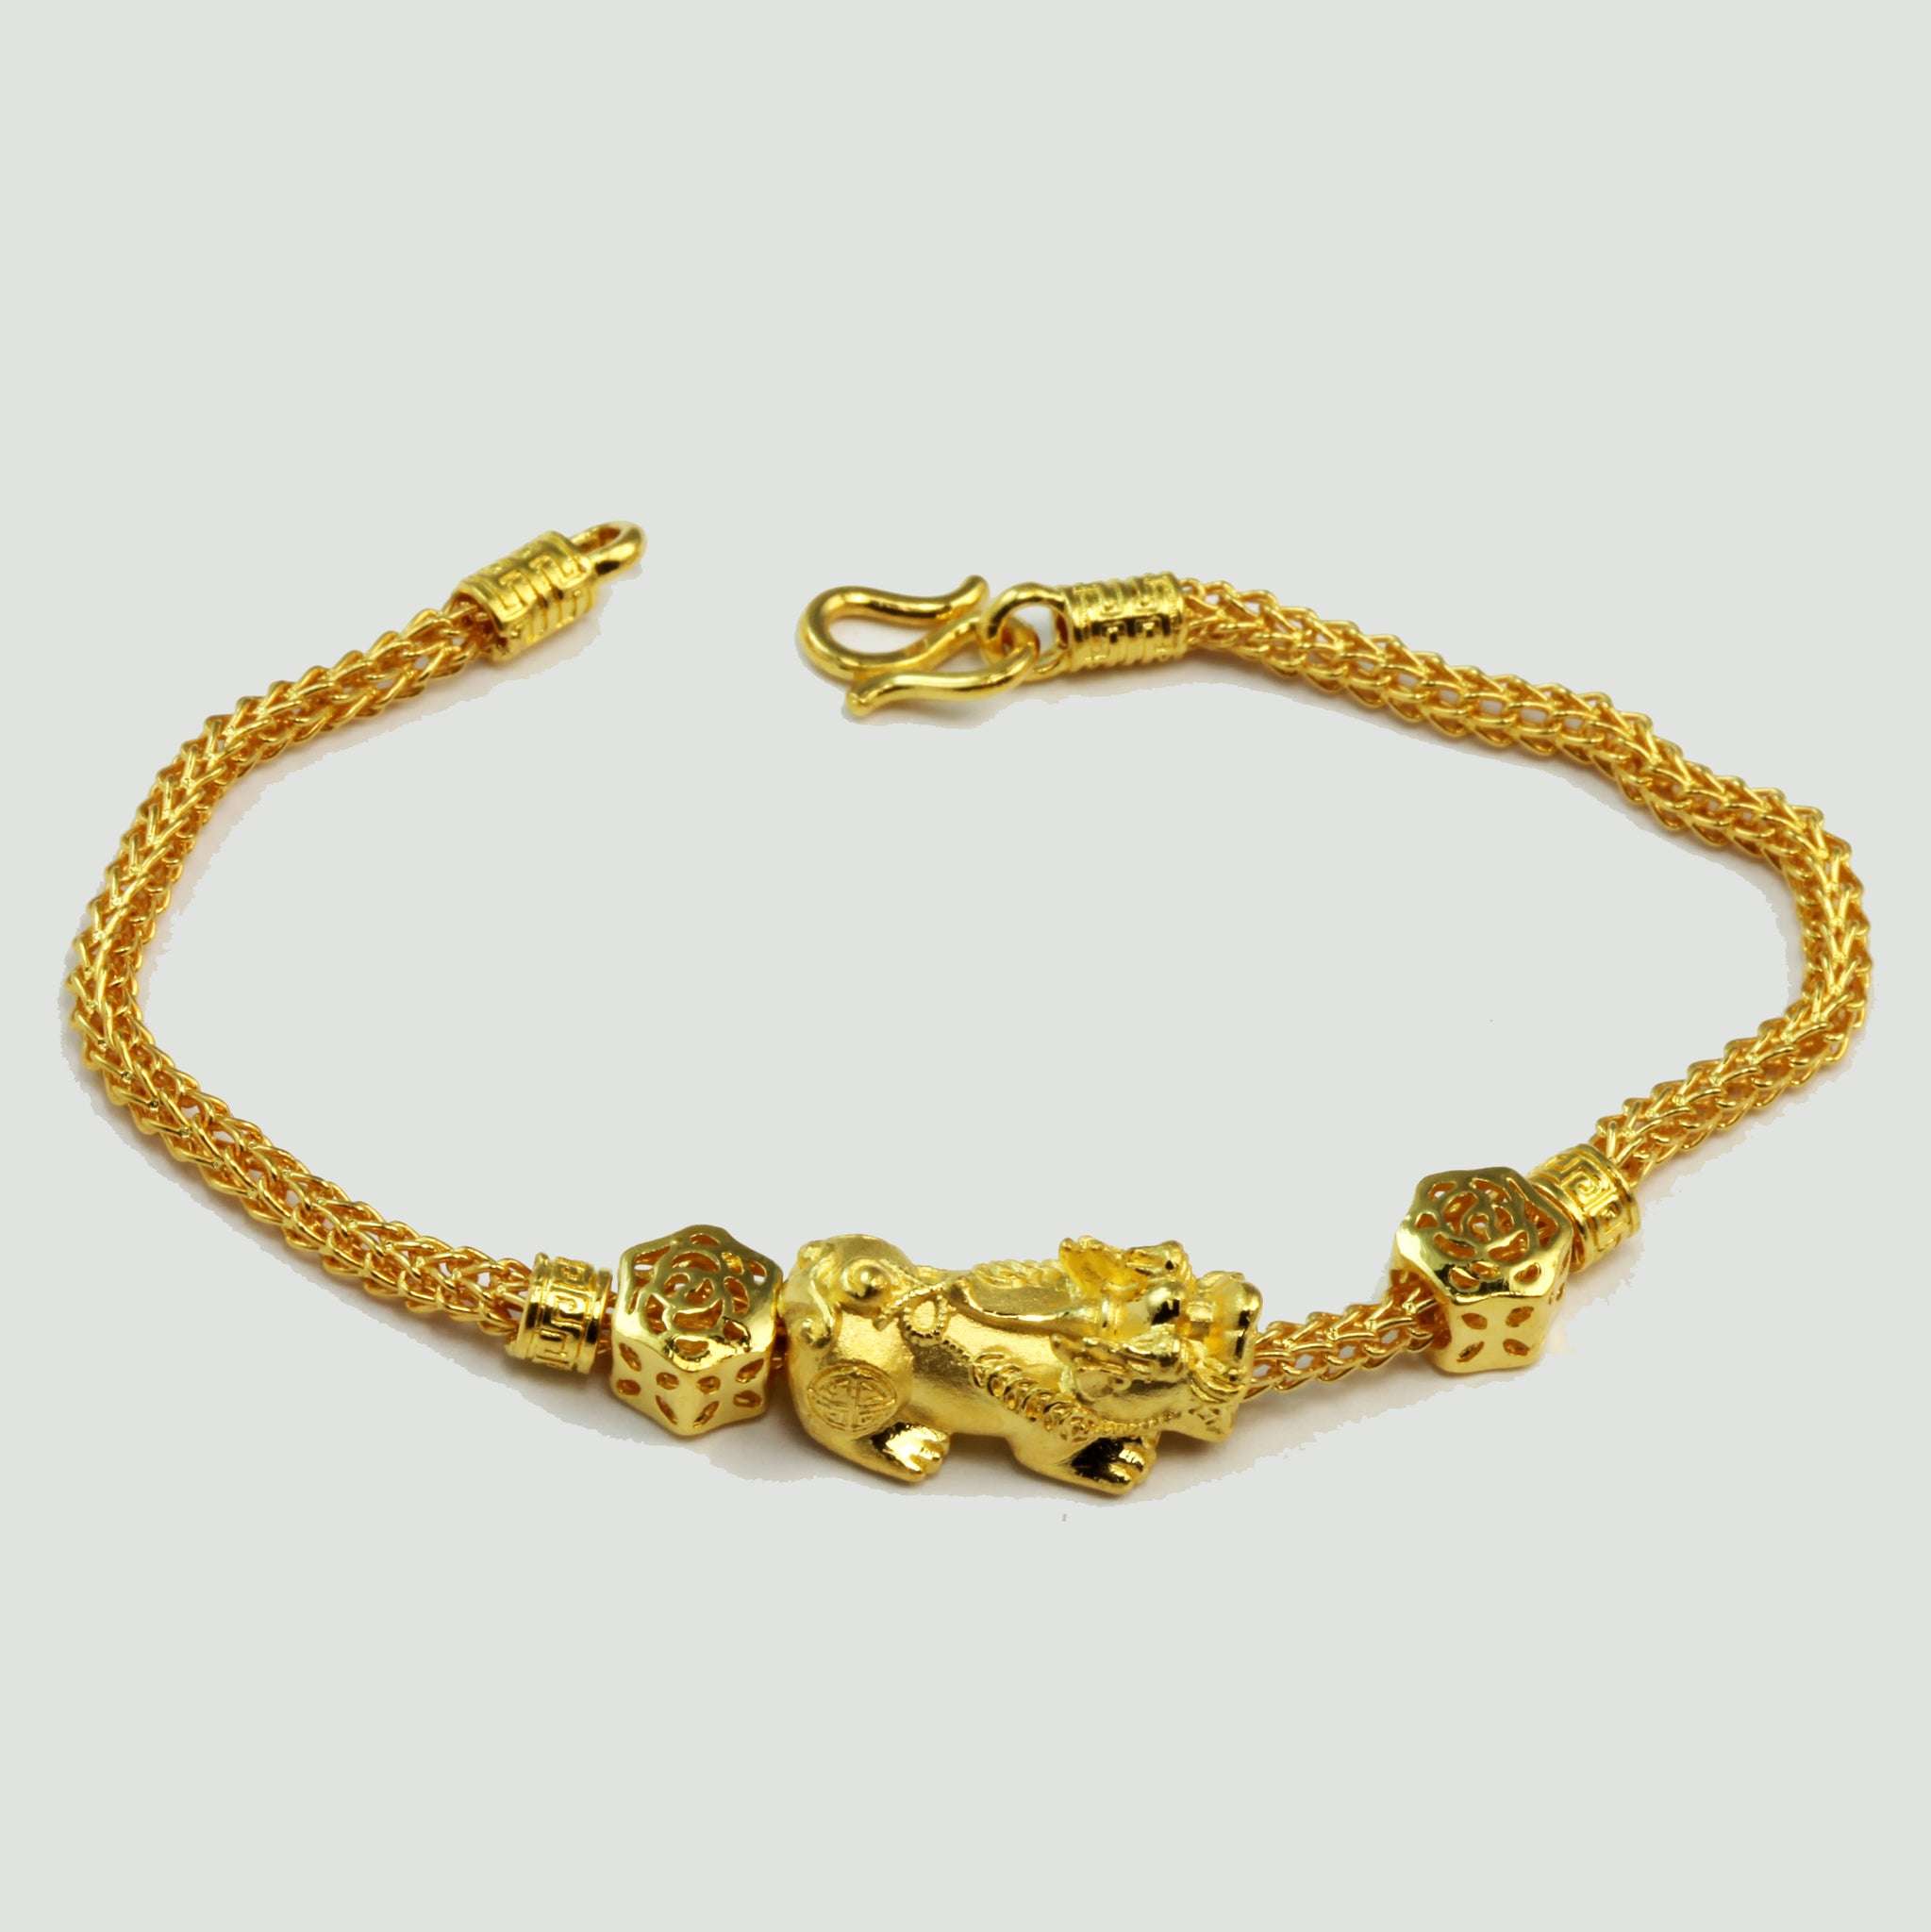 24K Solid Yellow Gold Pi Xiu Pi Yao 貔貅 Bracelet 15.8 Grams